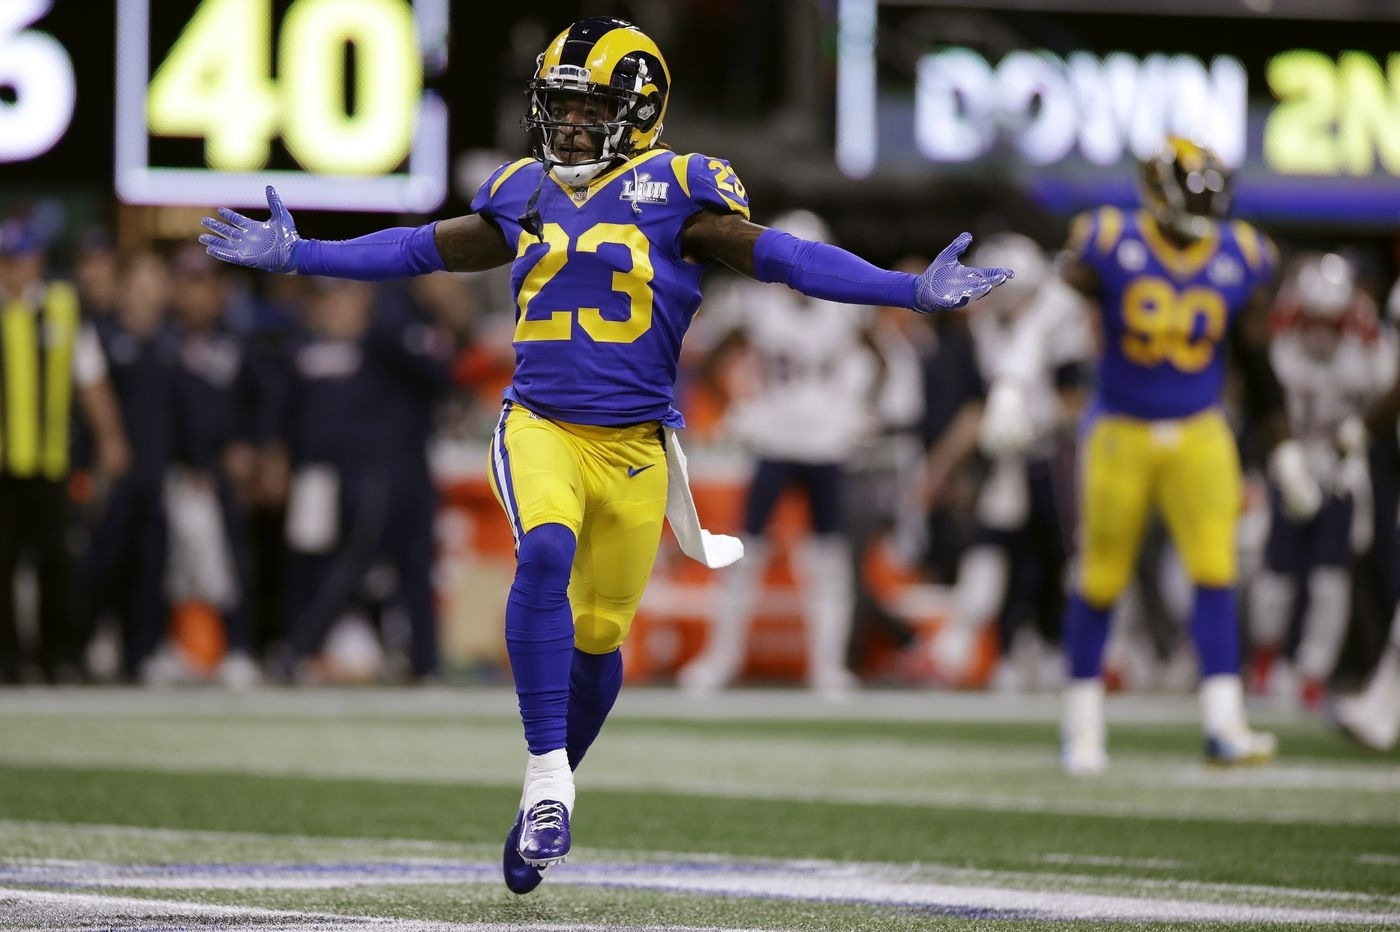 Super Bowl 2019: Rams' Nickell Robey-Coleman Backs Up with regard to Rams Super Bowl 2019